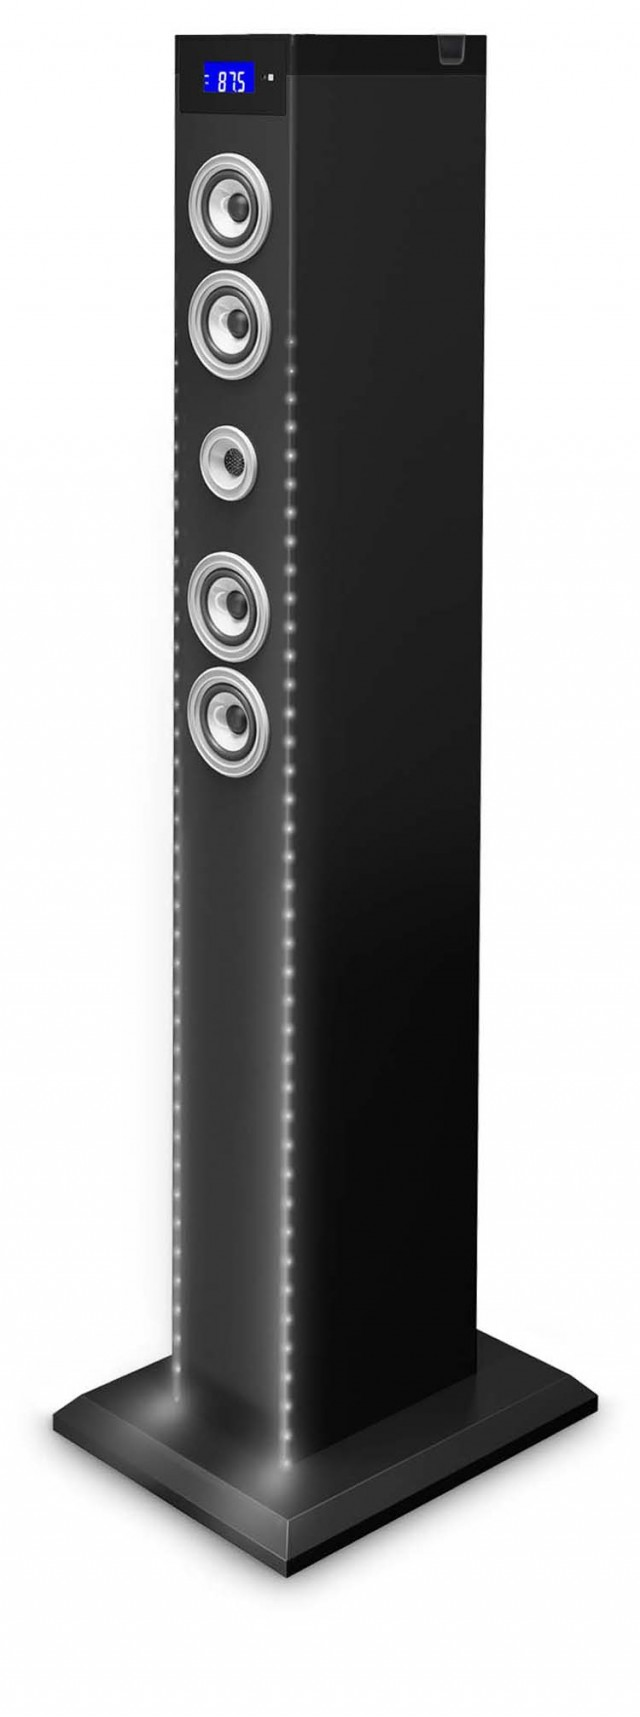 "Multimedia Tower Equalizer"" (Black)"" - Packshot"